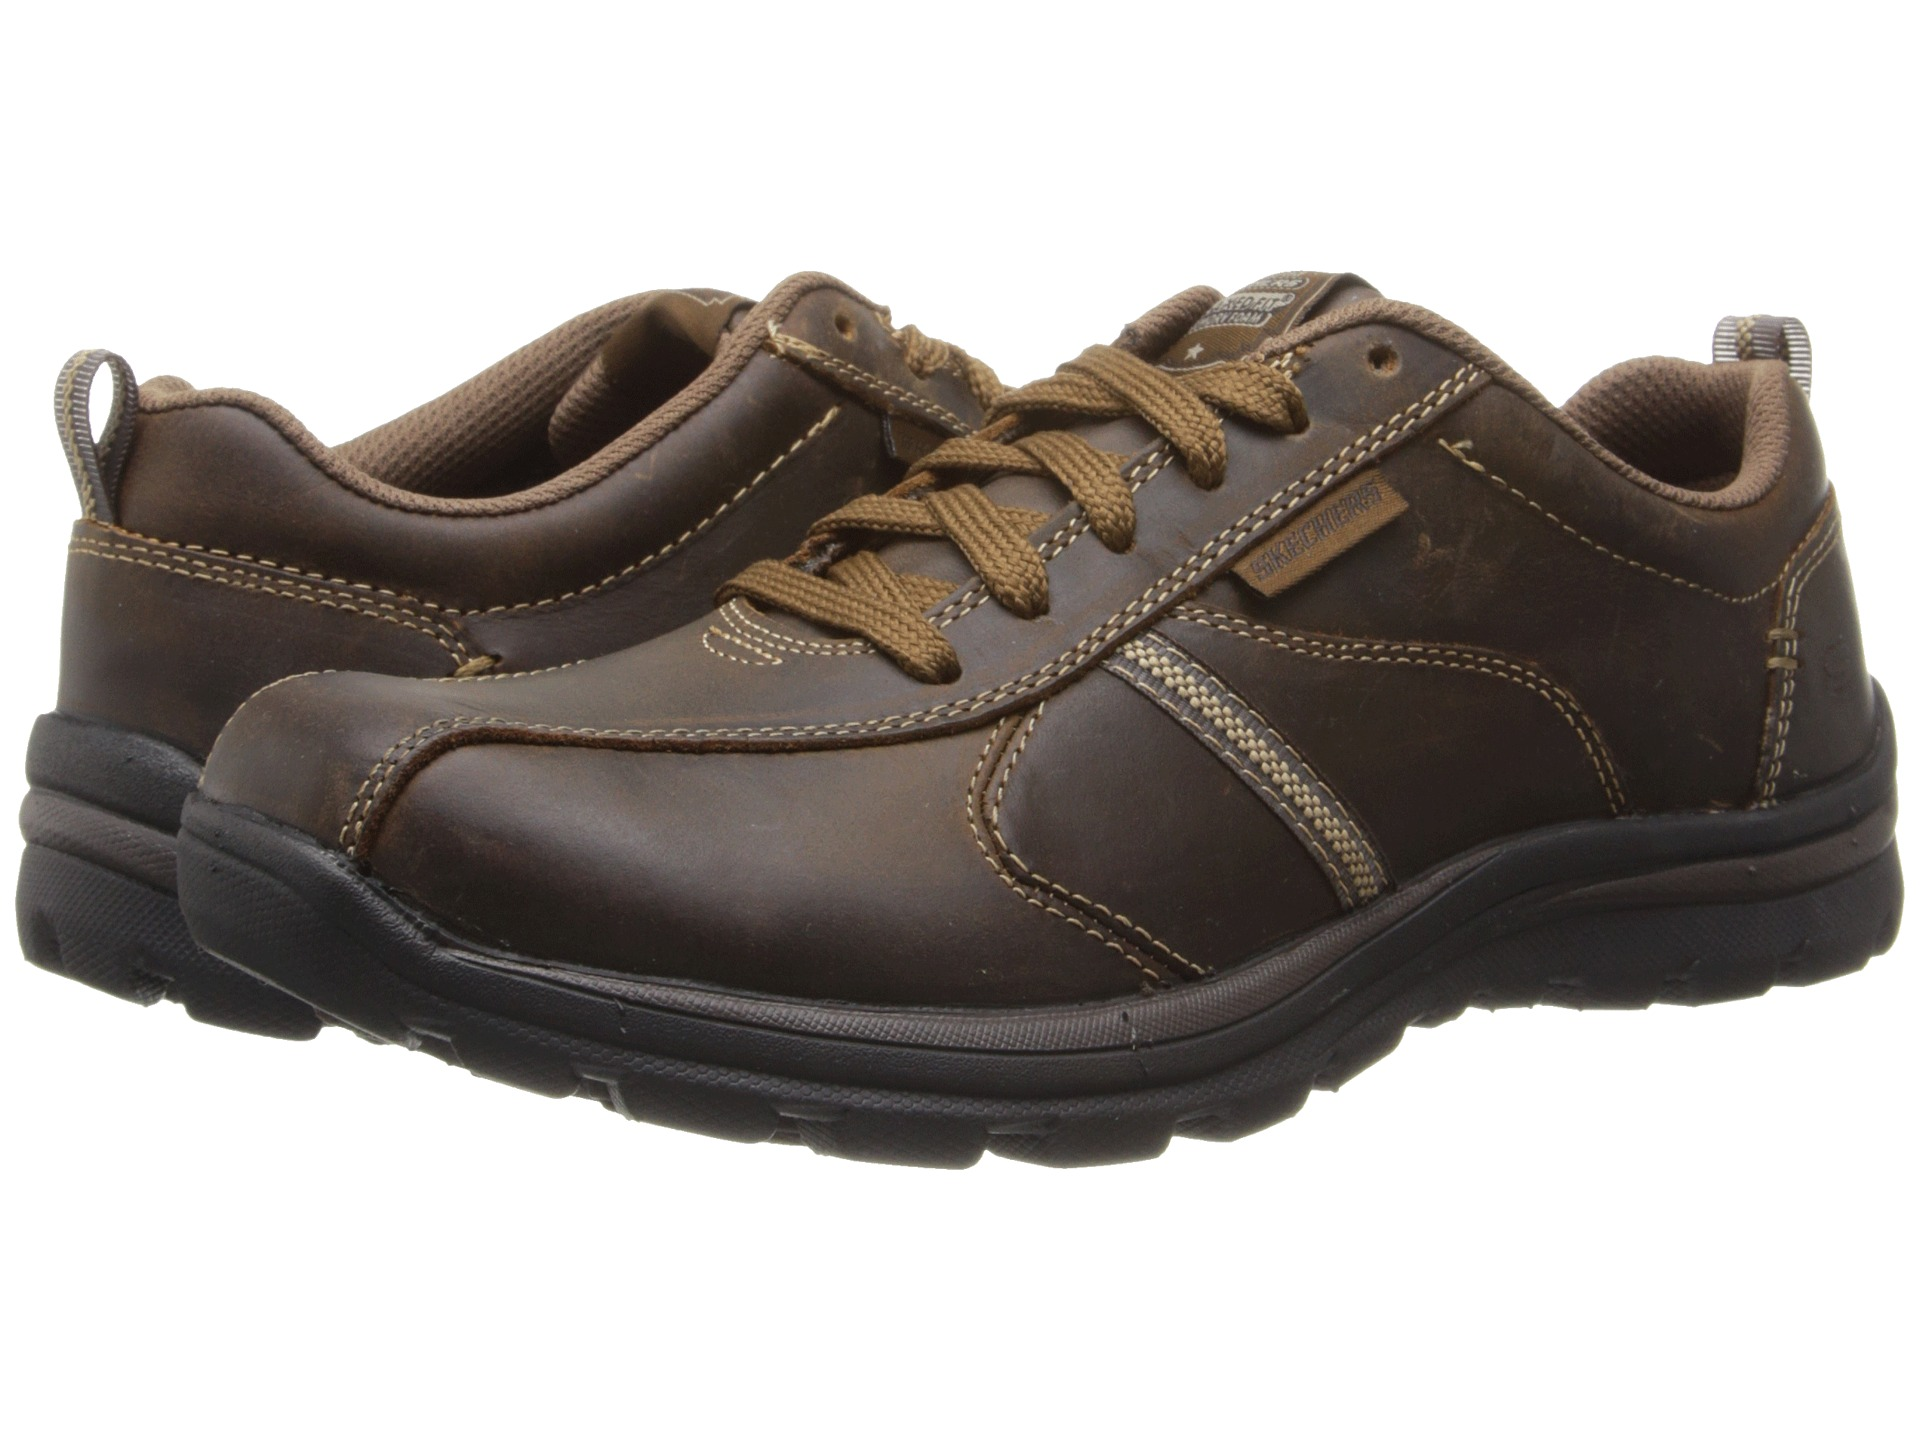 Sketchers Shoes Mens Wide